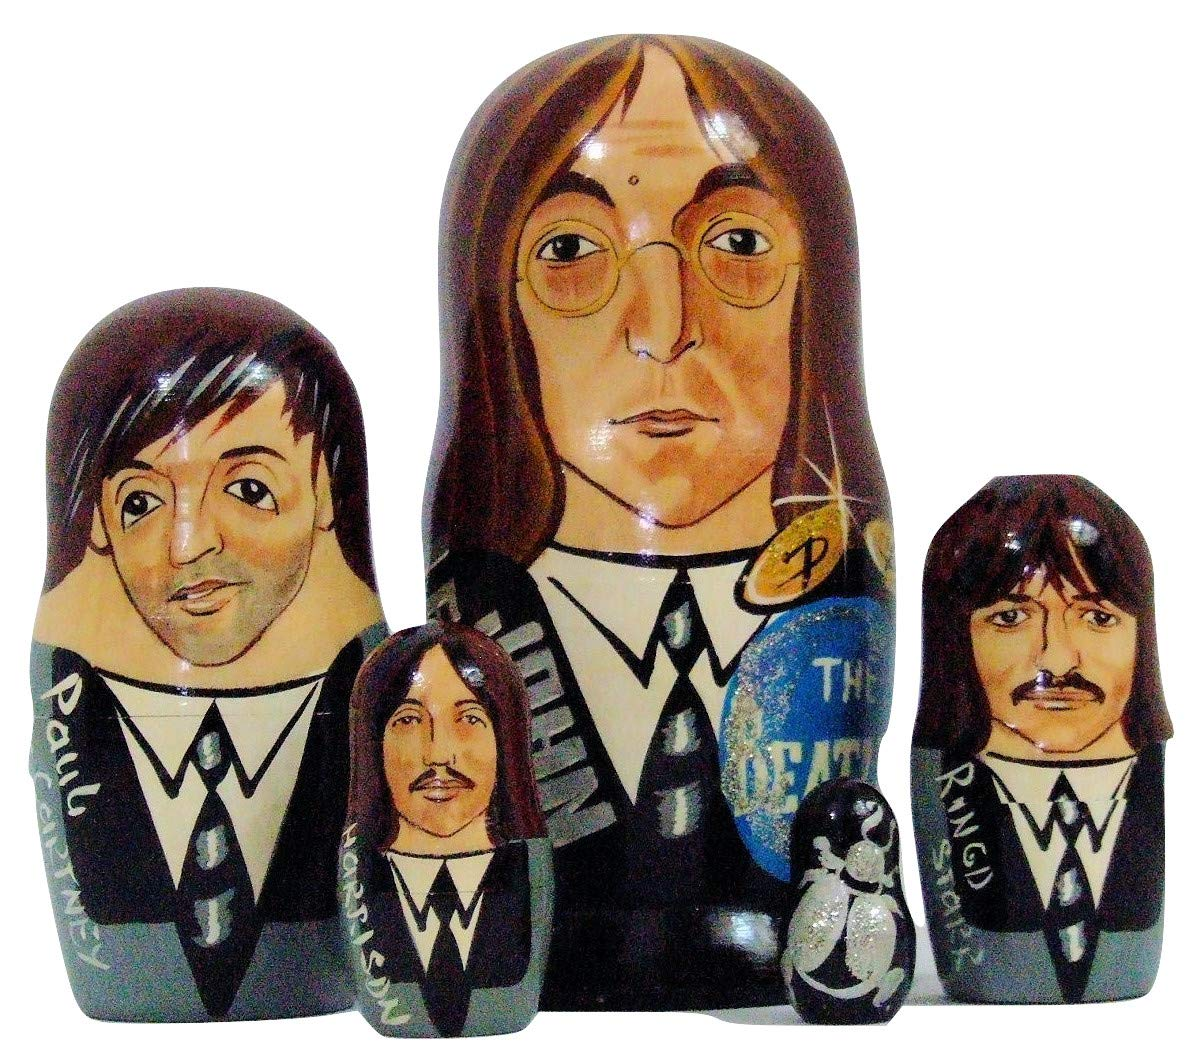 5pcs Hand Painted Russian Nesting Doll of The Beatles Large ( 7 inches Tall) by Olga's Russian Collectibles